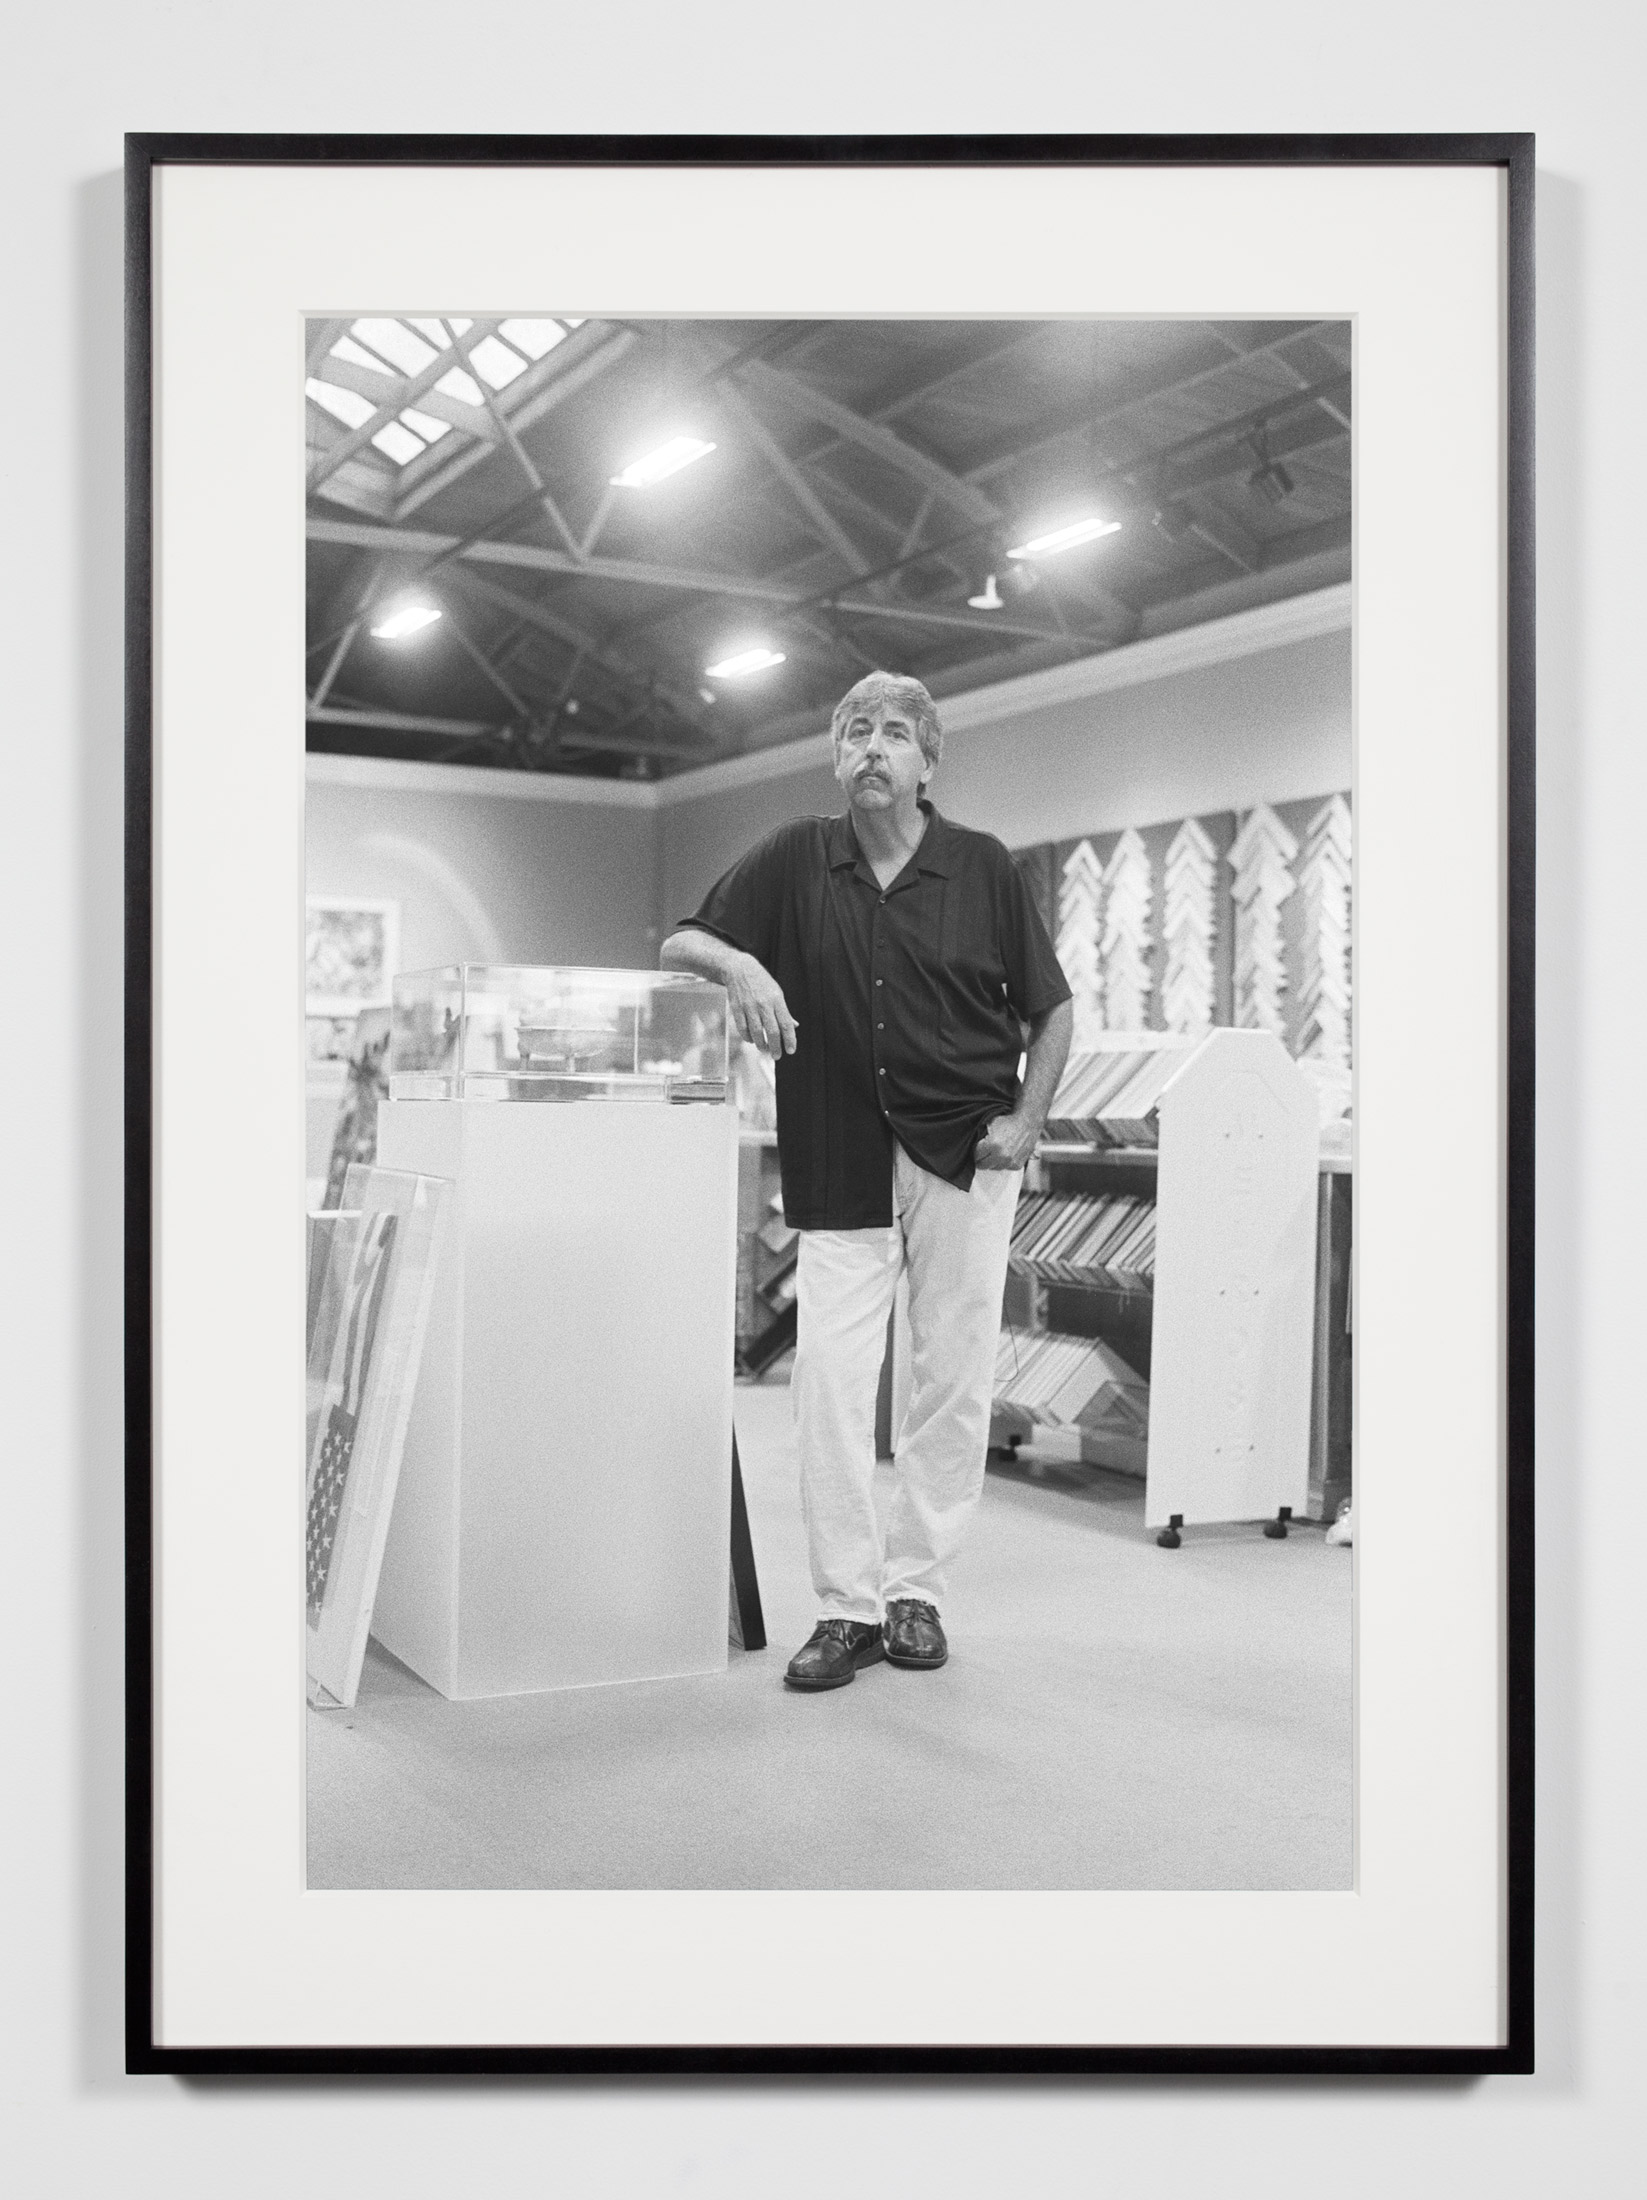 Master Framer (RR), Los Angeles, California, June 20, 2009    2009   Epson Ultrachrome K3 archival ink jet print on Hahnemühle Photo Rag paper  36 3/8 x 26 3/8 inches   Industrial Portraits, 2008–